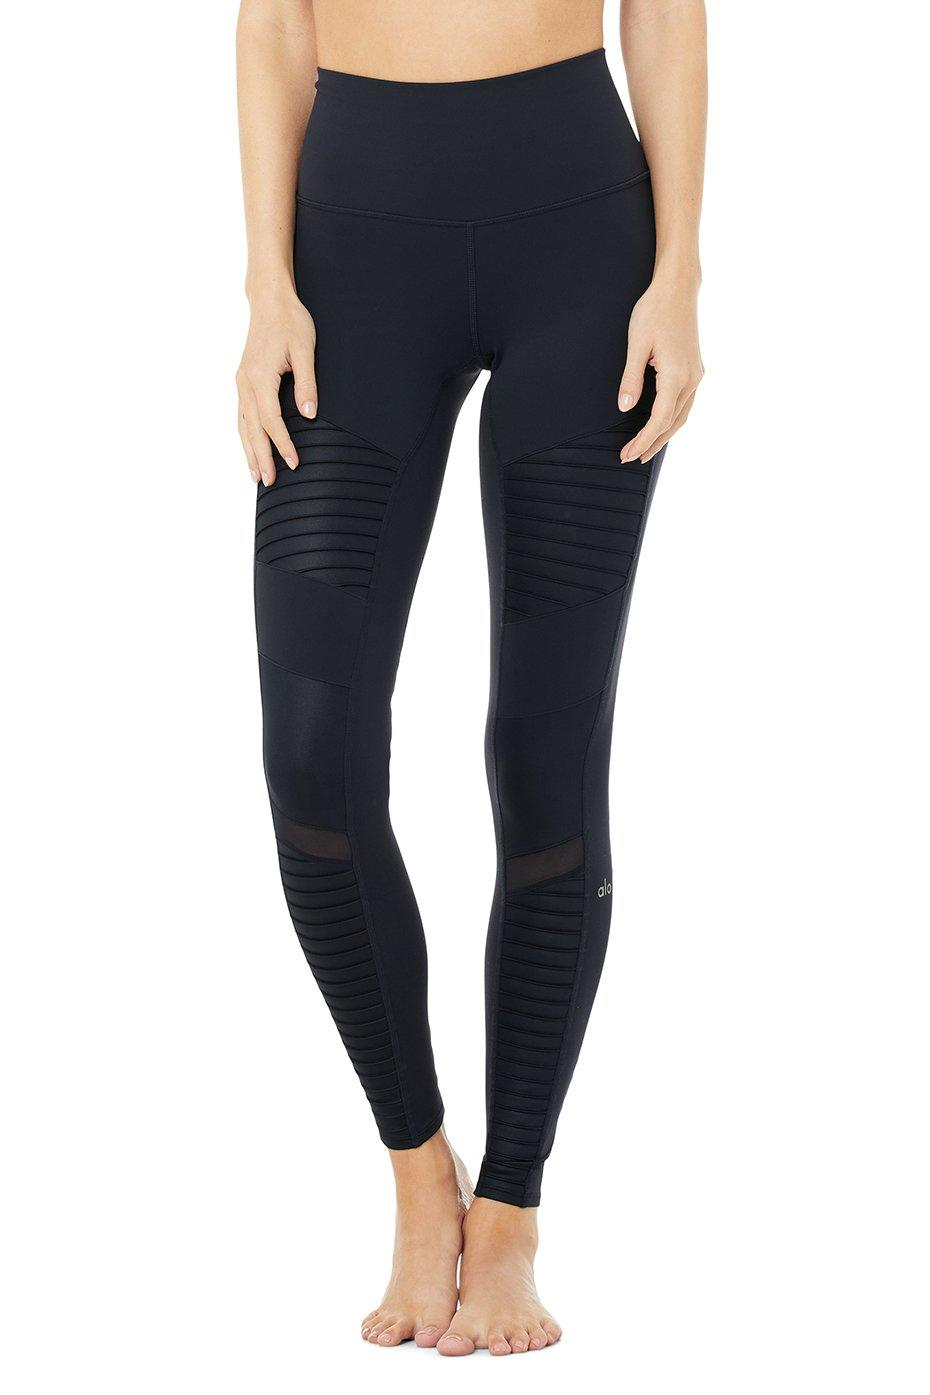 HIGH-WAIST MOTO LEGGING - on sale at Alo Yoga, $119 (originally $149).